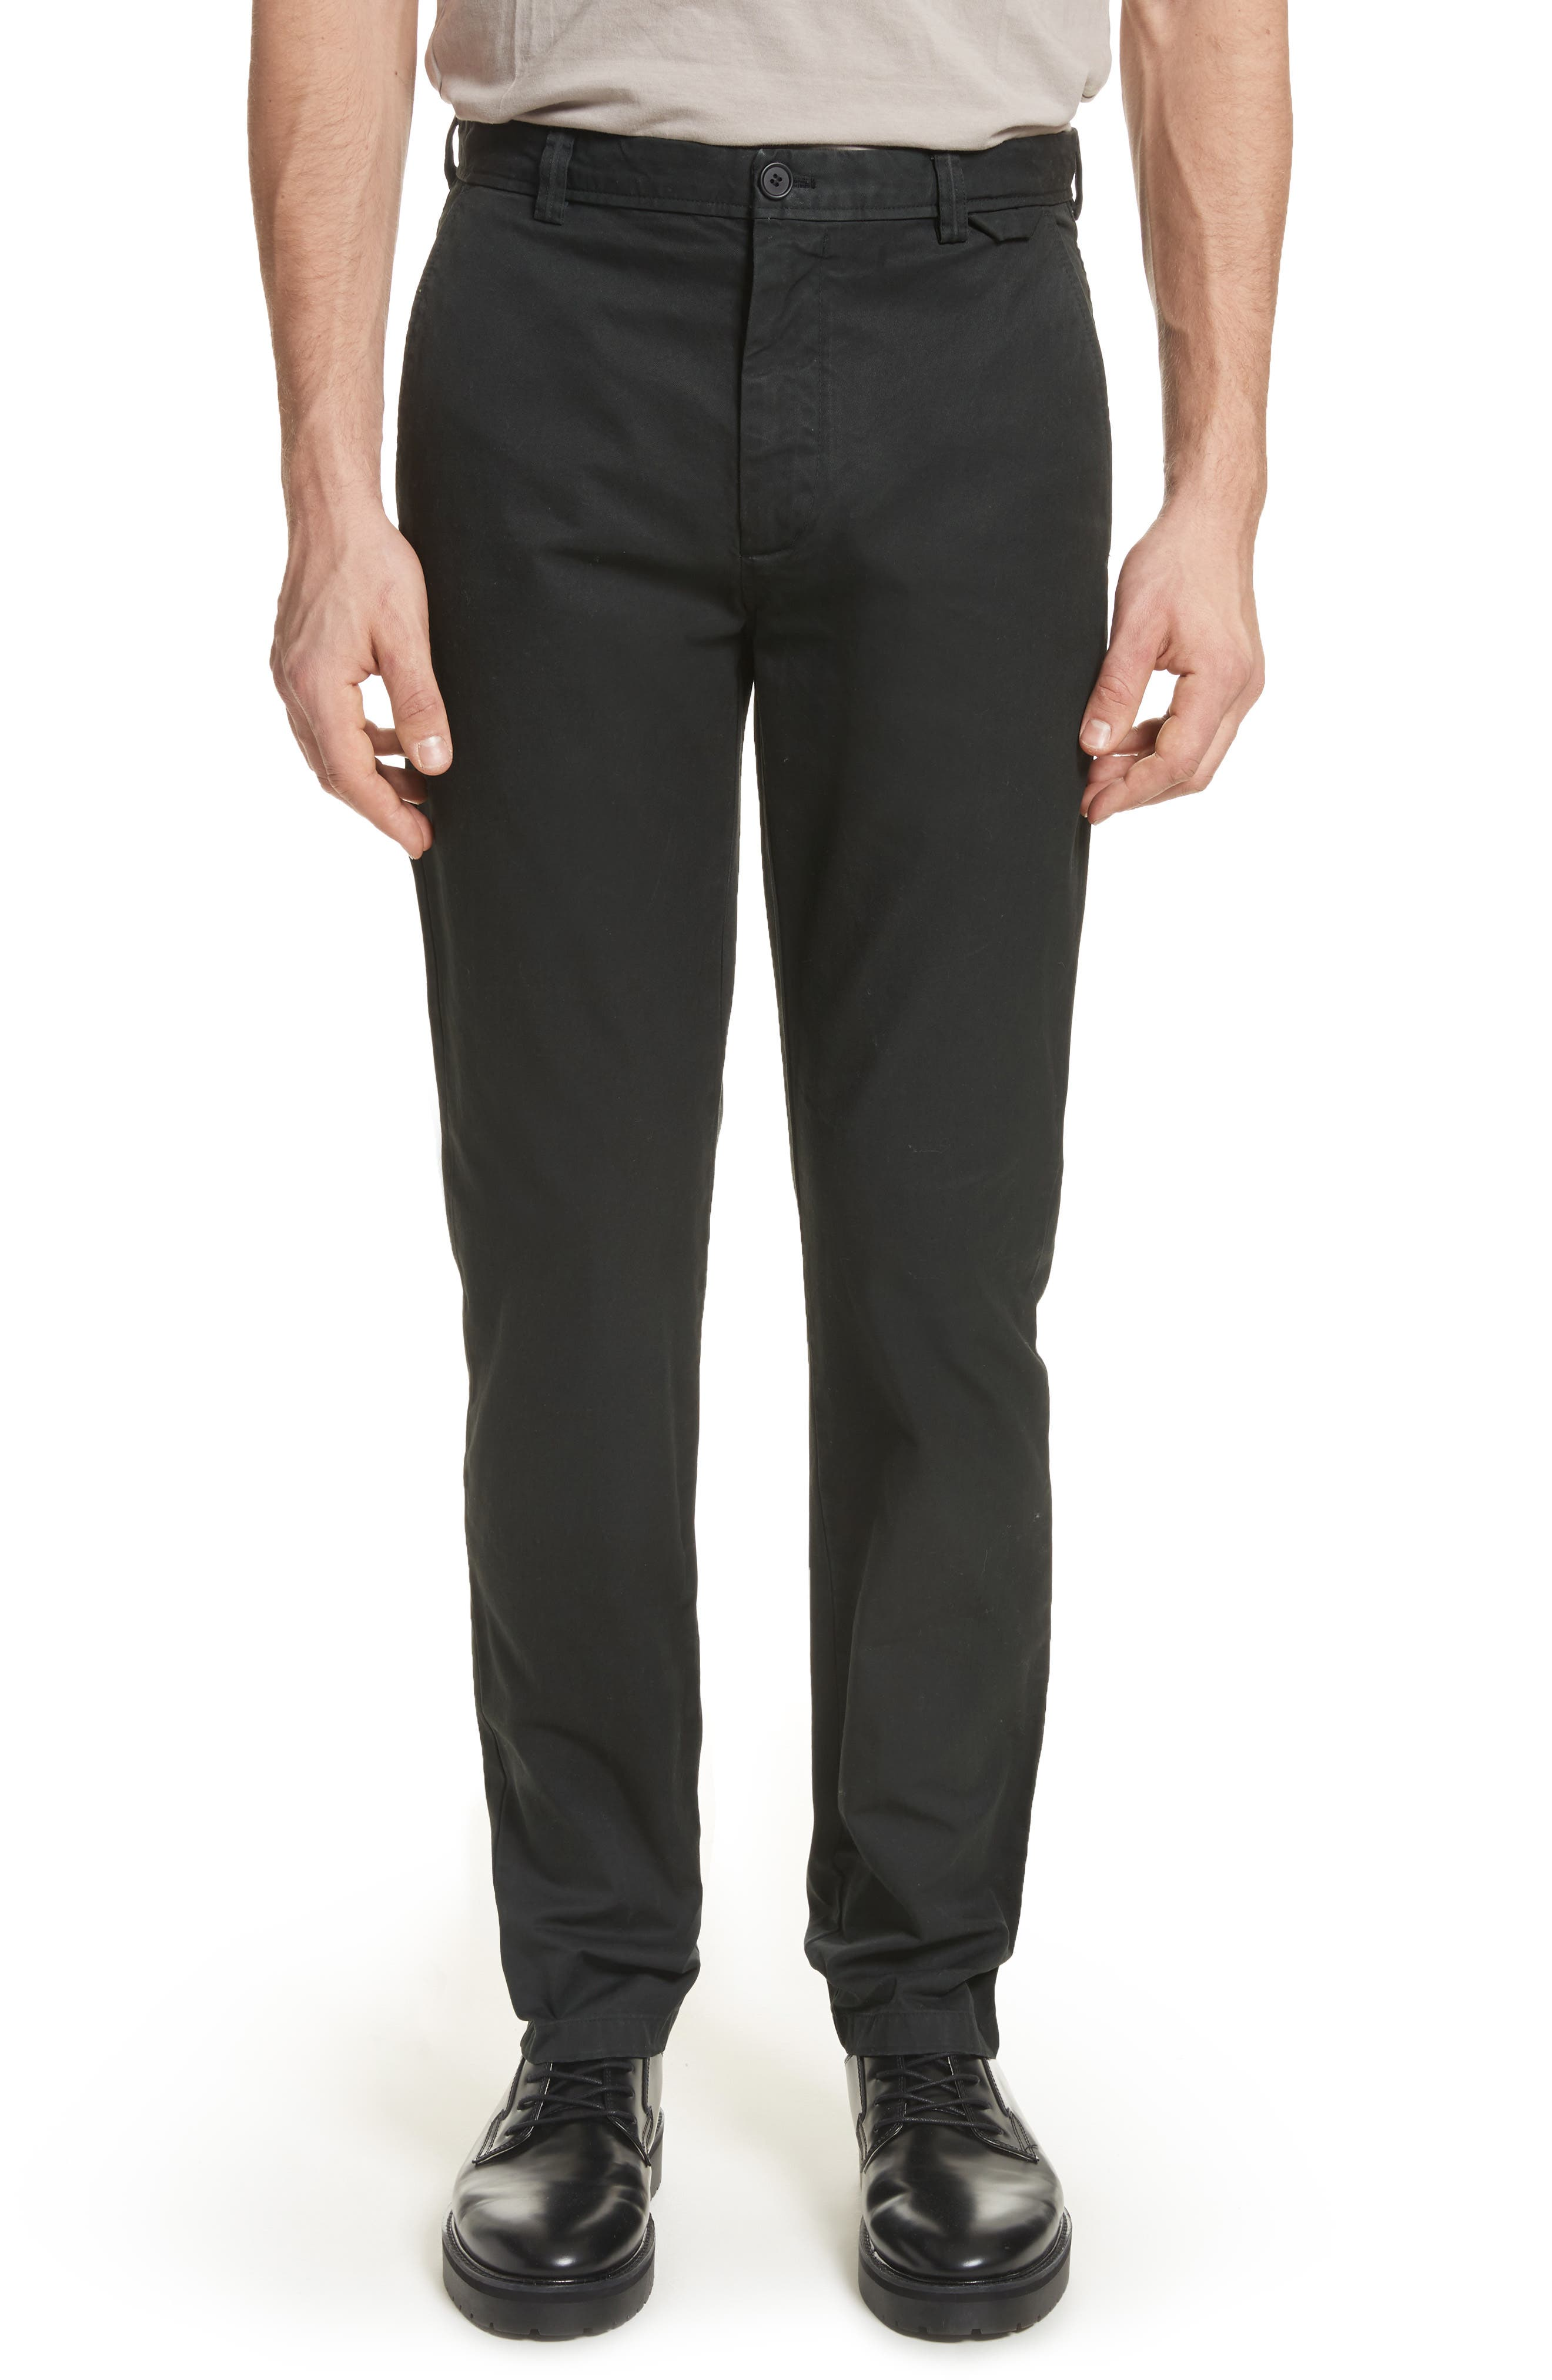 Isher Chinos,                         Main,                         color, Coal Black